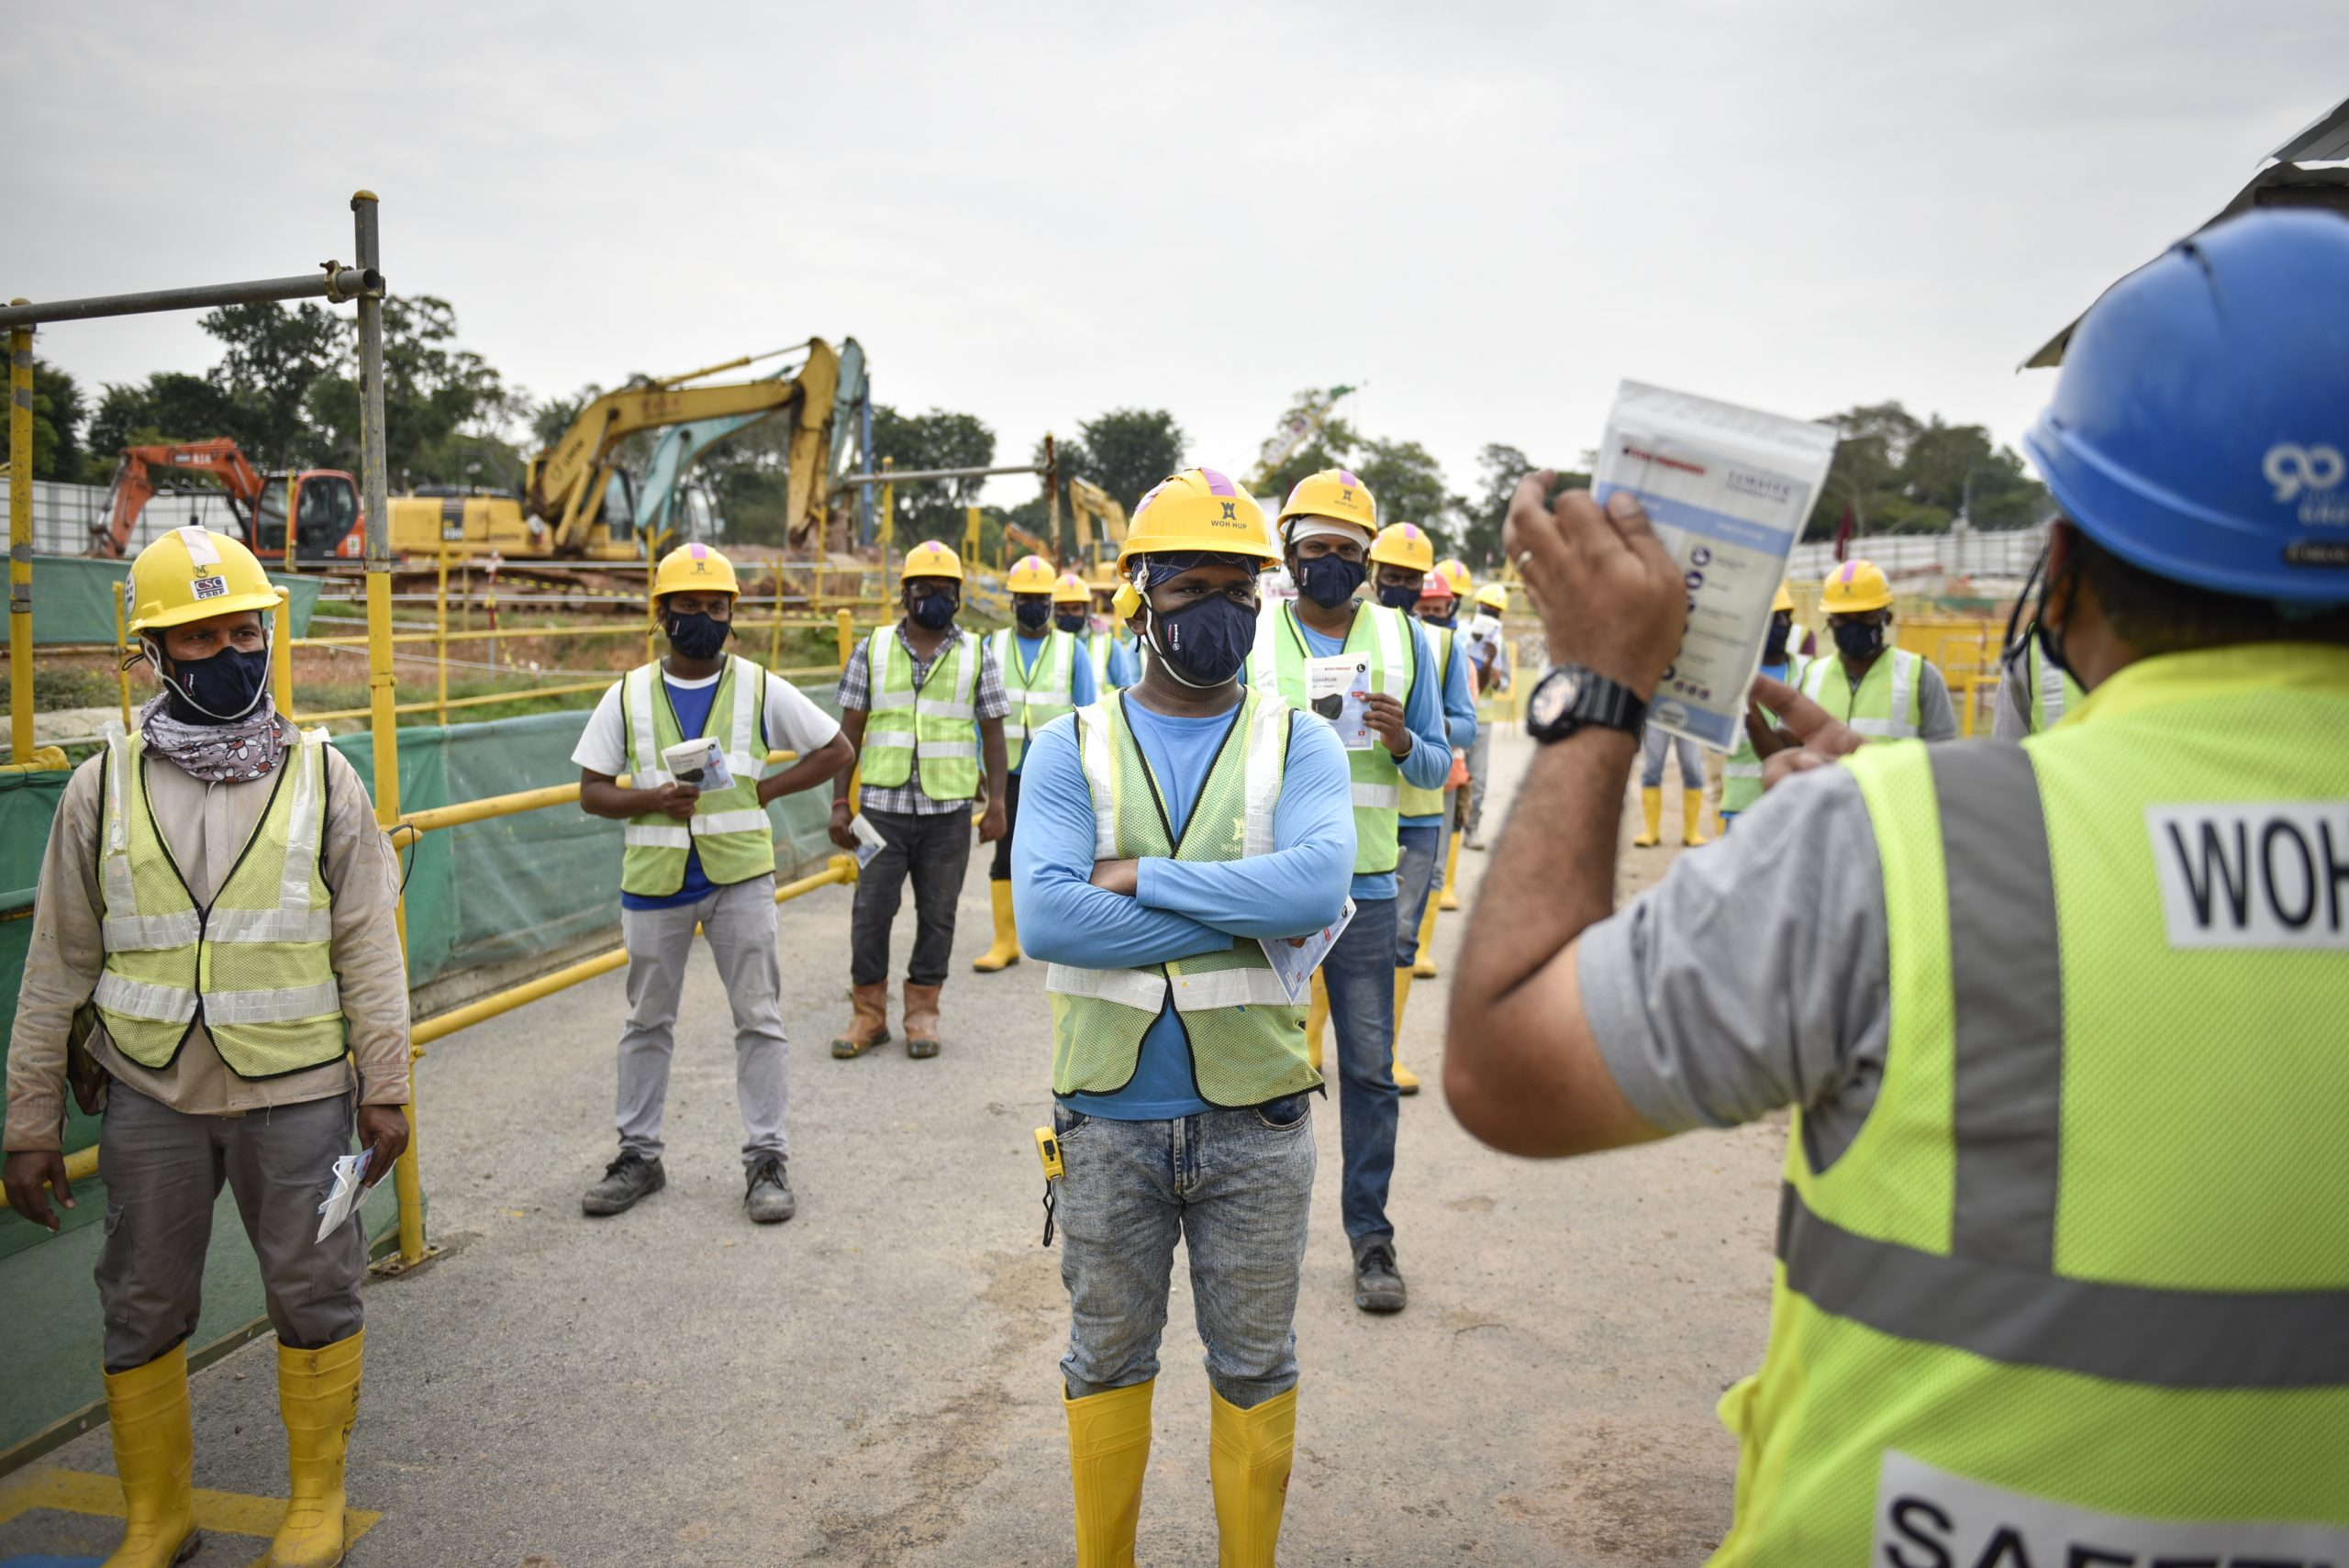 A site supervisor explains to workers that the reusable masks need only be washed once a week, instead of daily, and is reusable for up to 30 washes